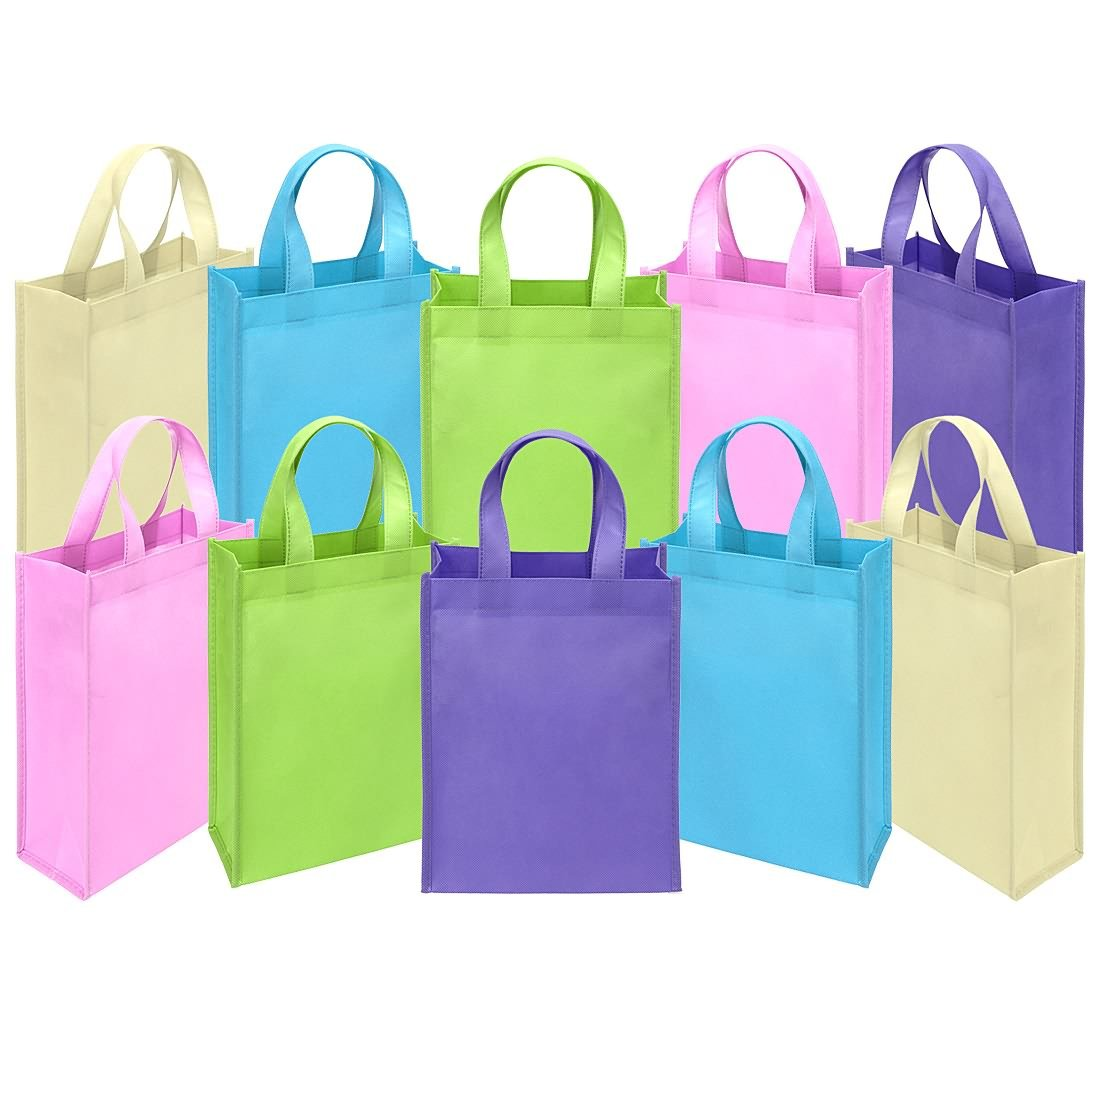 Ava & Kings Fabric Tote Party Favor Goodie Gift Bags for Candy, Treats, Toys, Loot - Birthdays, Showers, Easter, Halloween, Lunch, Grocery - Set of 10 - Plain Pastel Colors by Ava & Kings